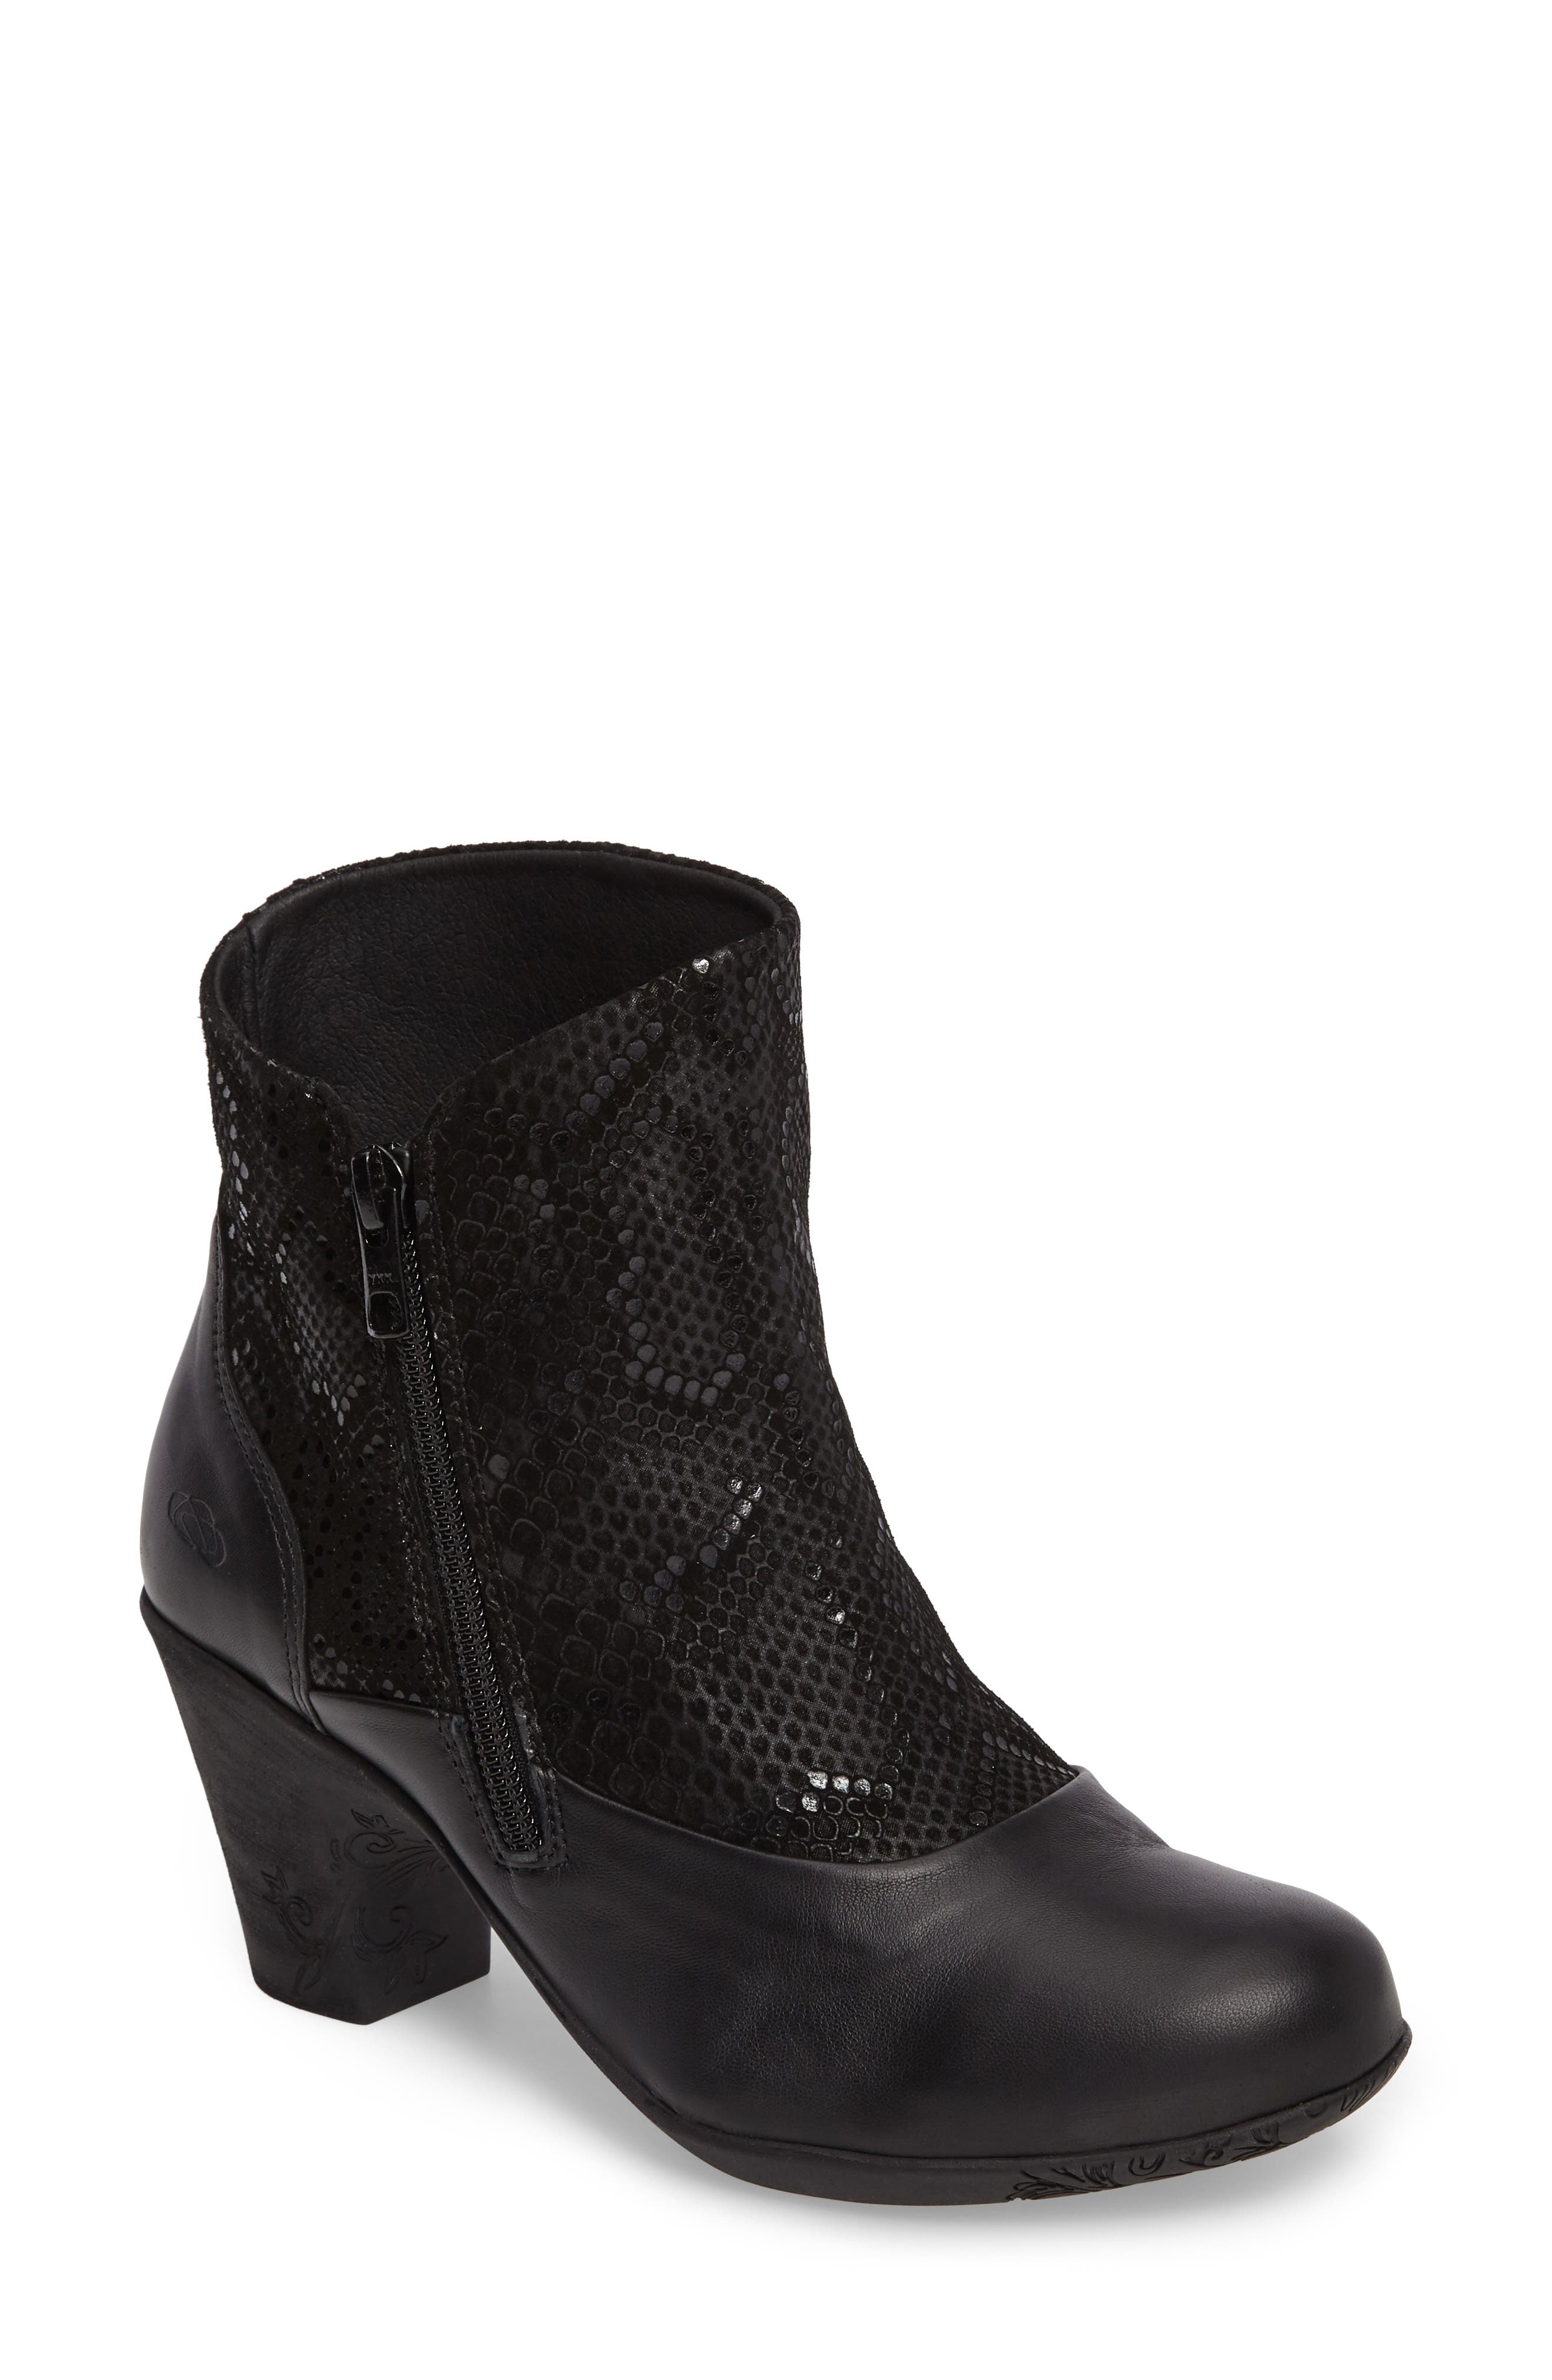 Janis Snake Embossed Bootie,                             Main thumbnail 1, color,                             001